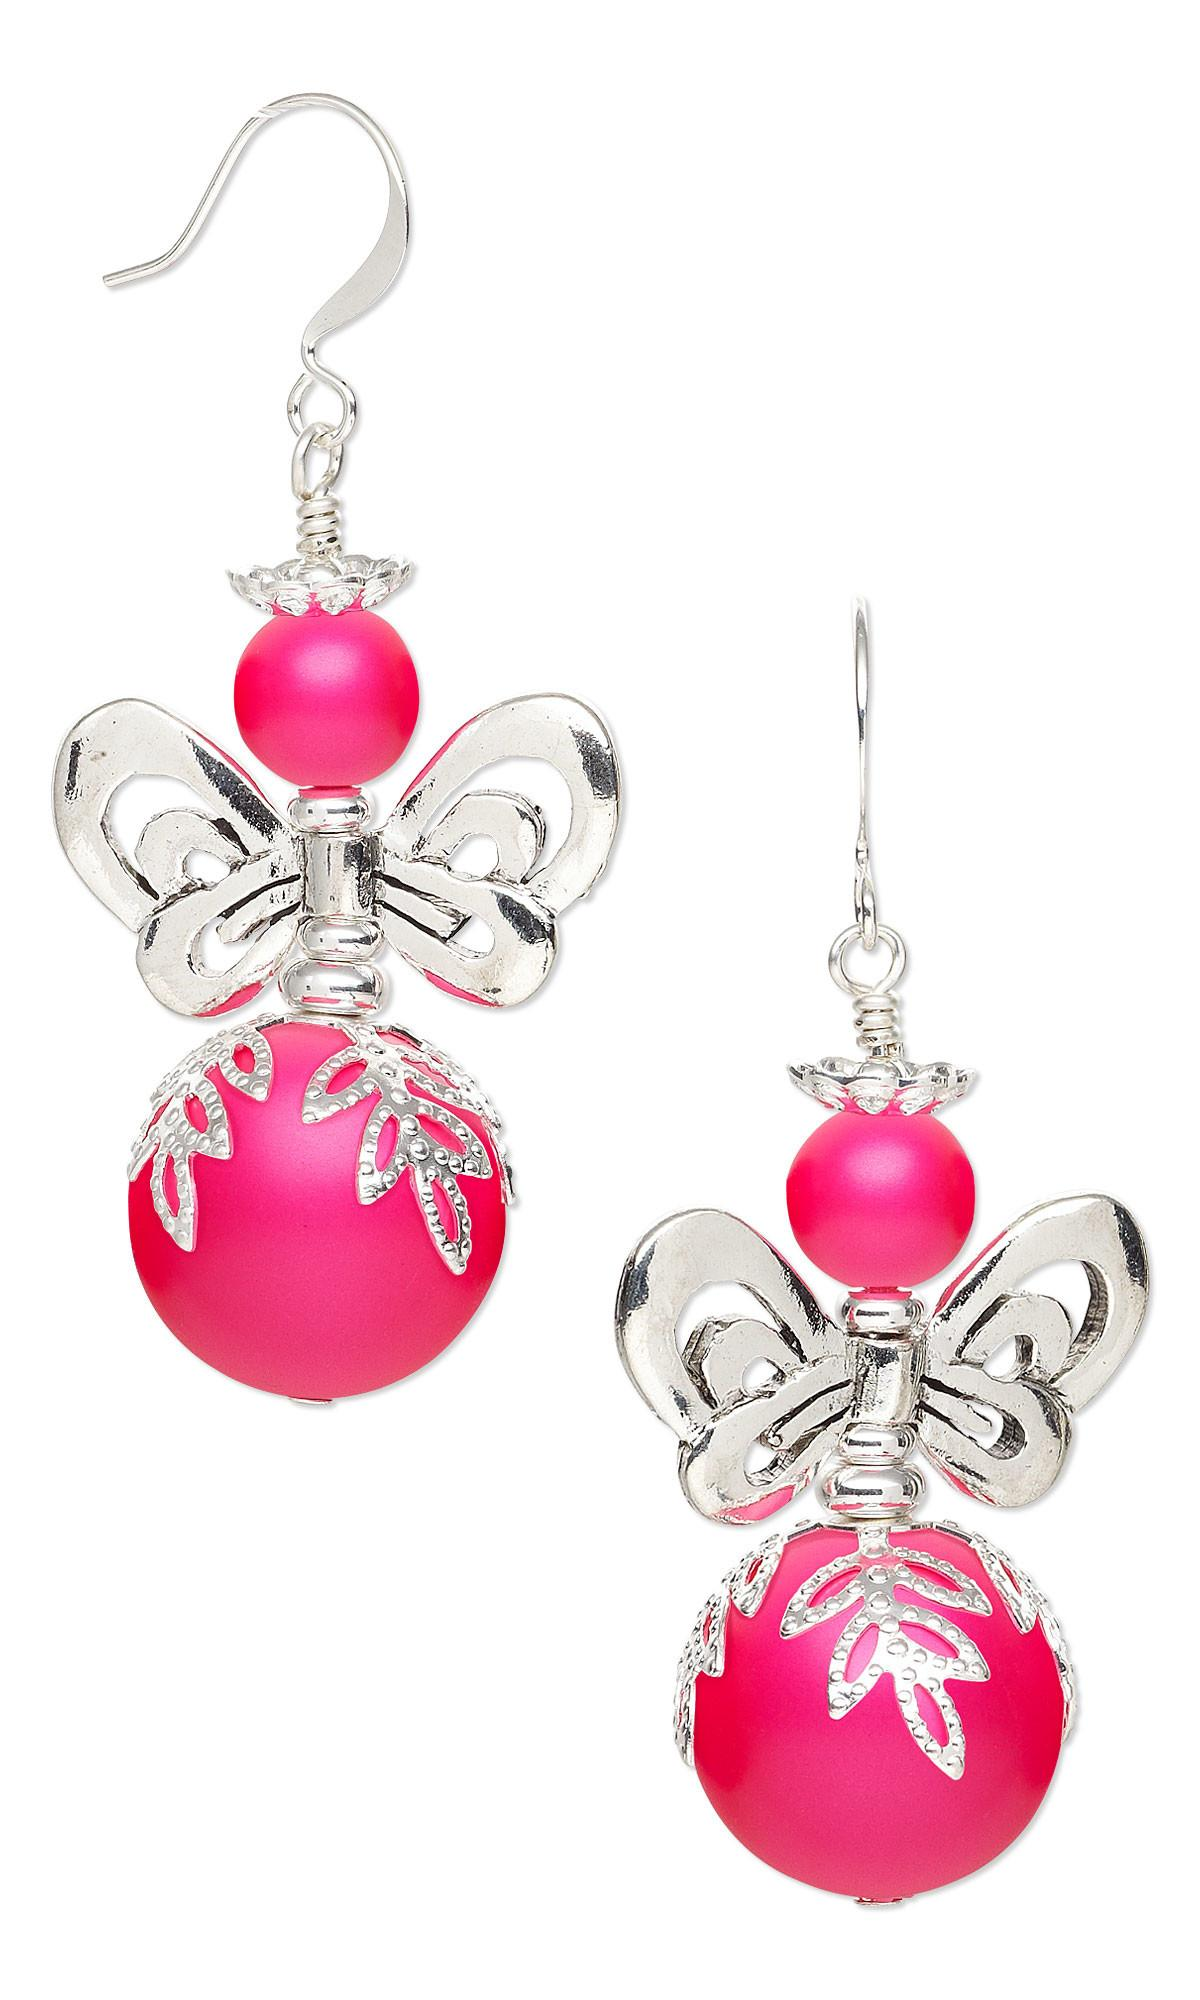 All Whos Down Whoville Easy Diy Christmas Earrings